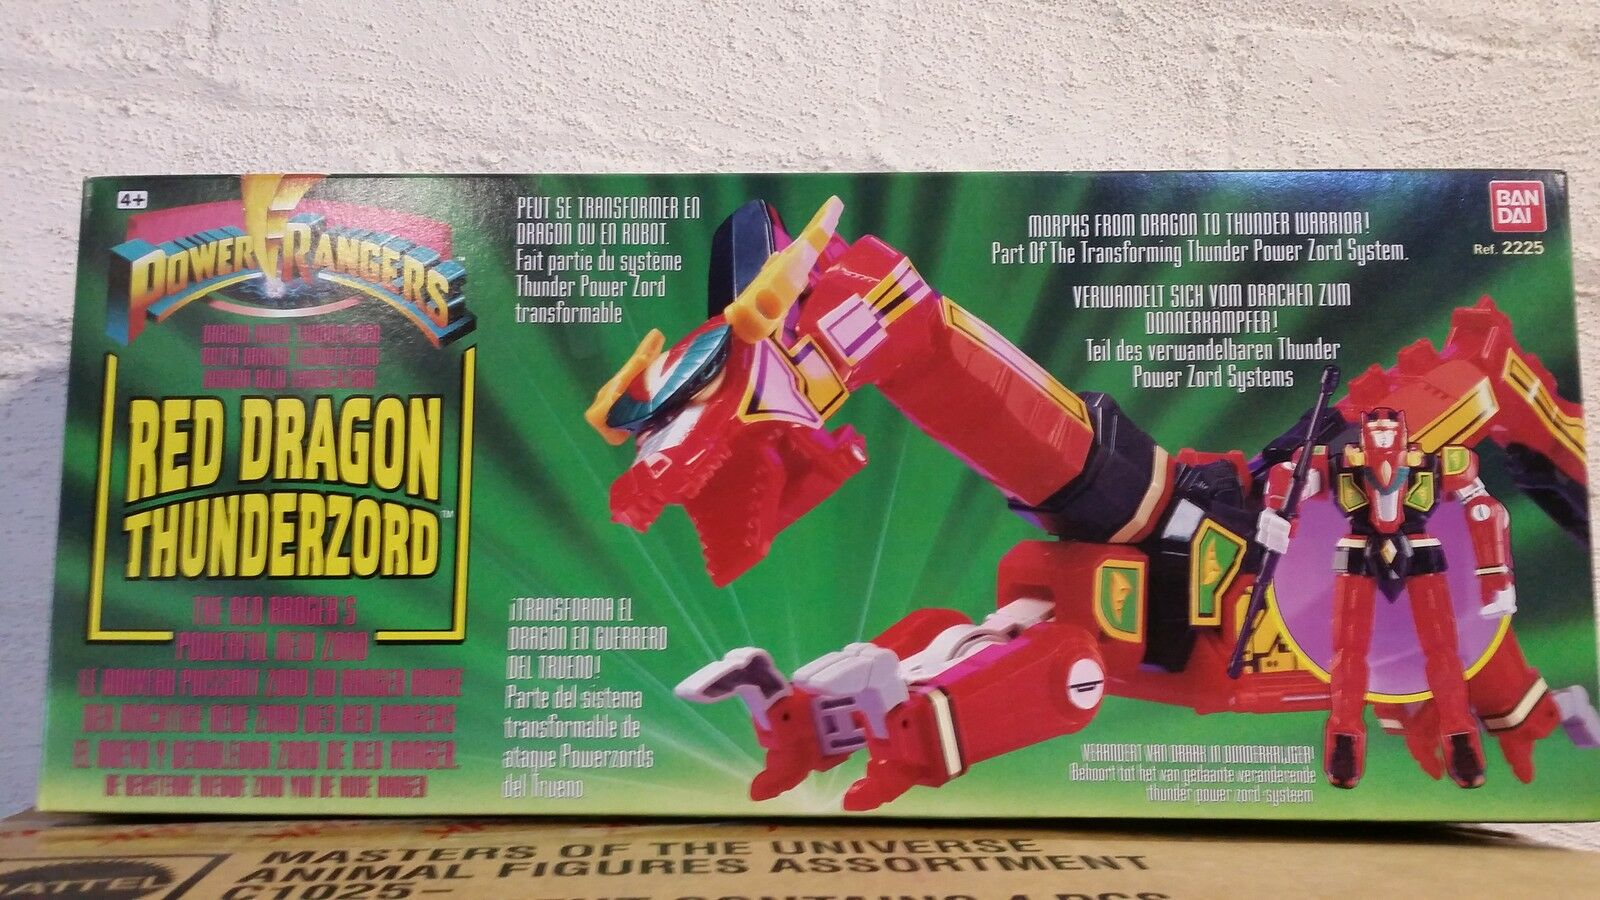 Mighty Morphin Power Rangers ROT Dragon Thunderzord from 1993 from sealed cases